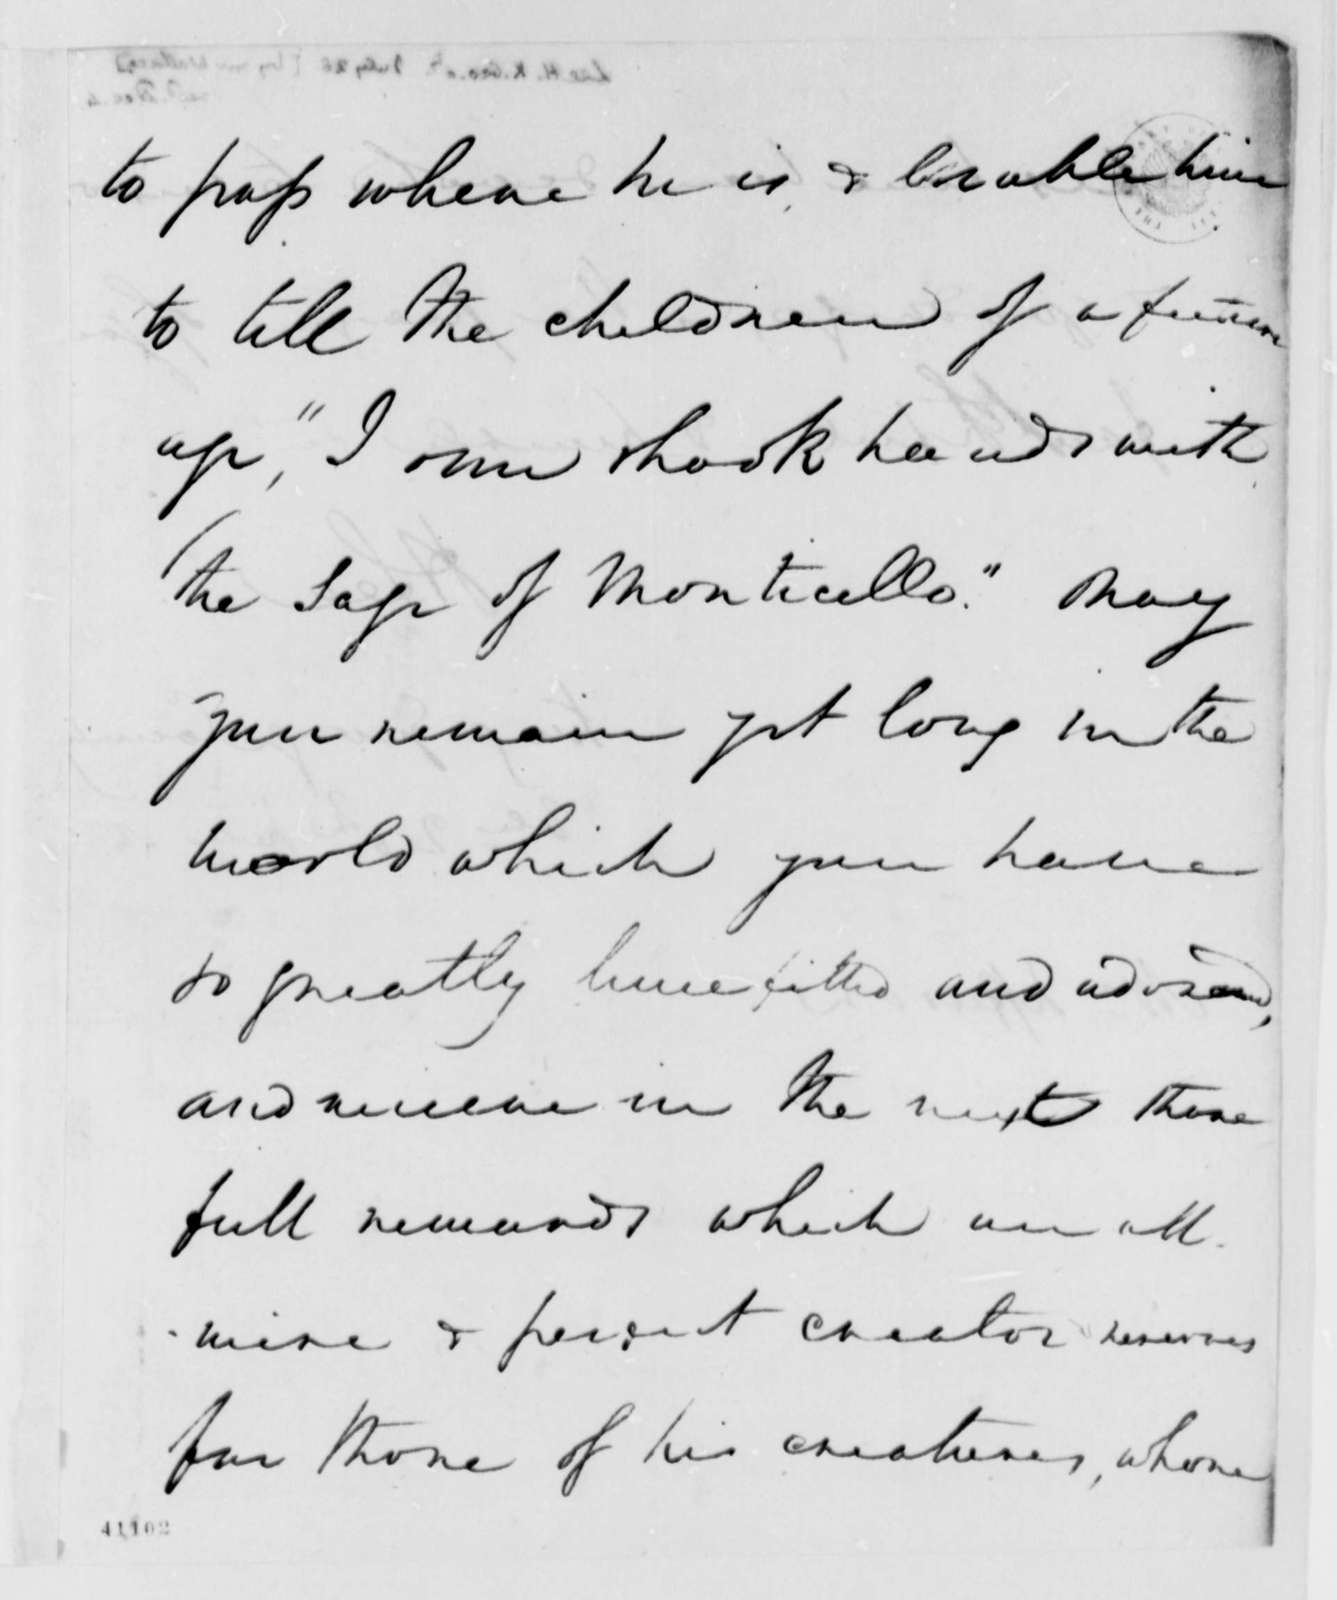 Henry Lee, Jr. to Thomas Jefferson, July 28, 1825